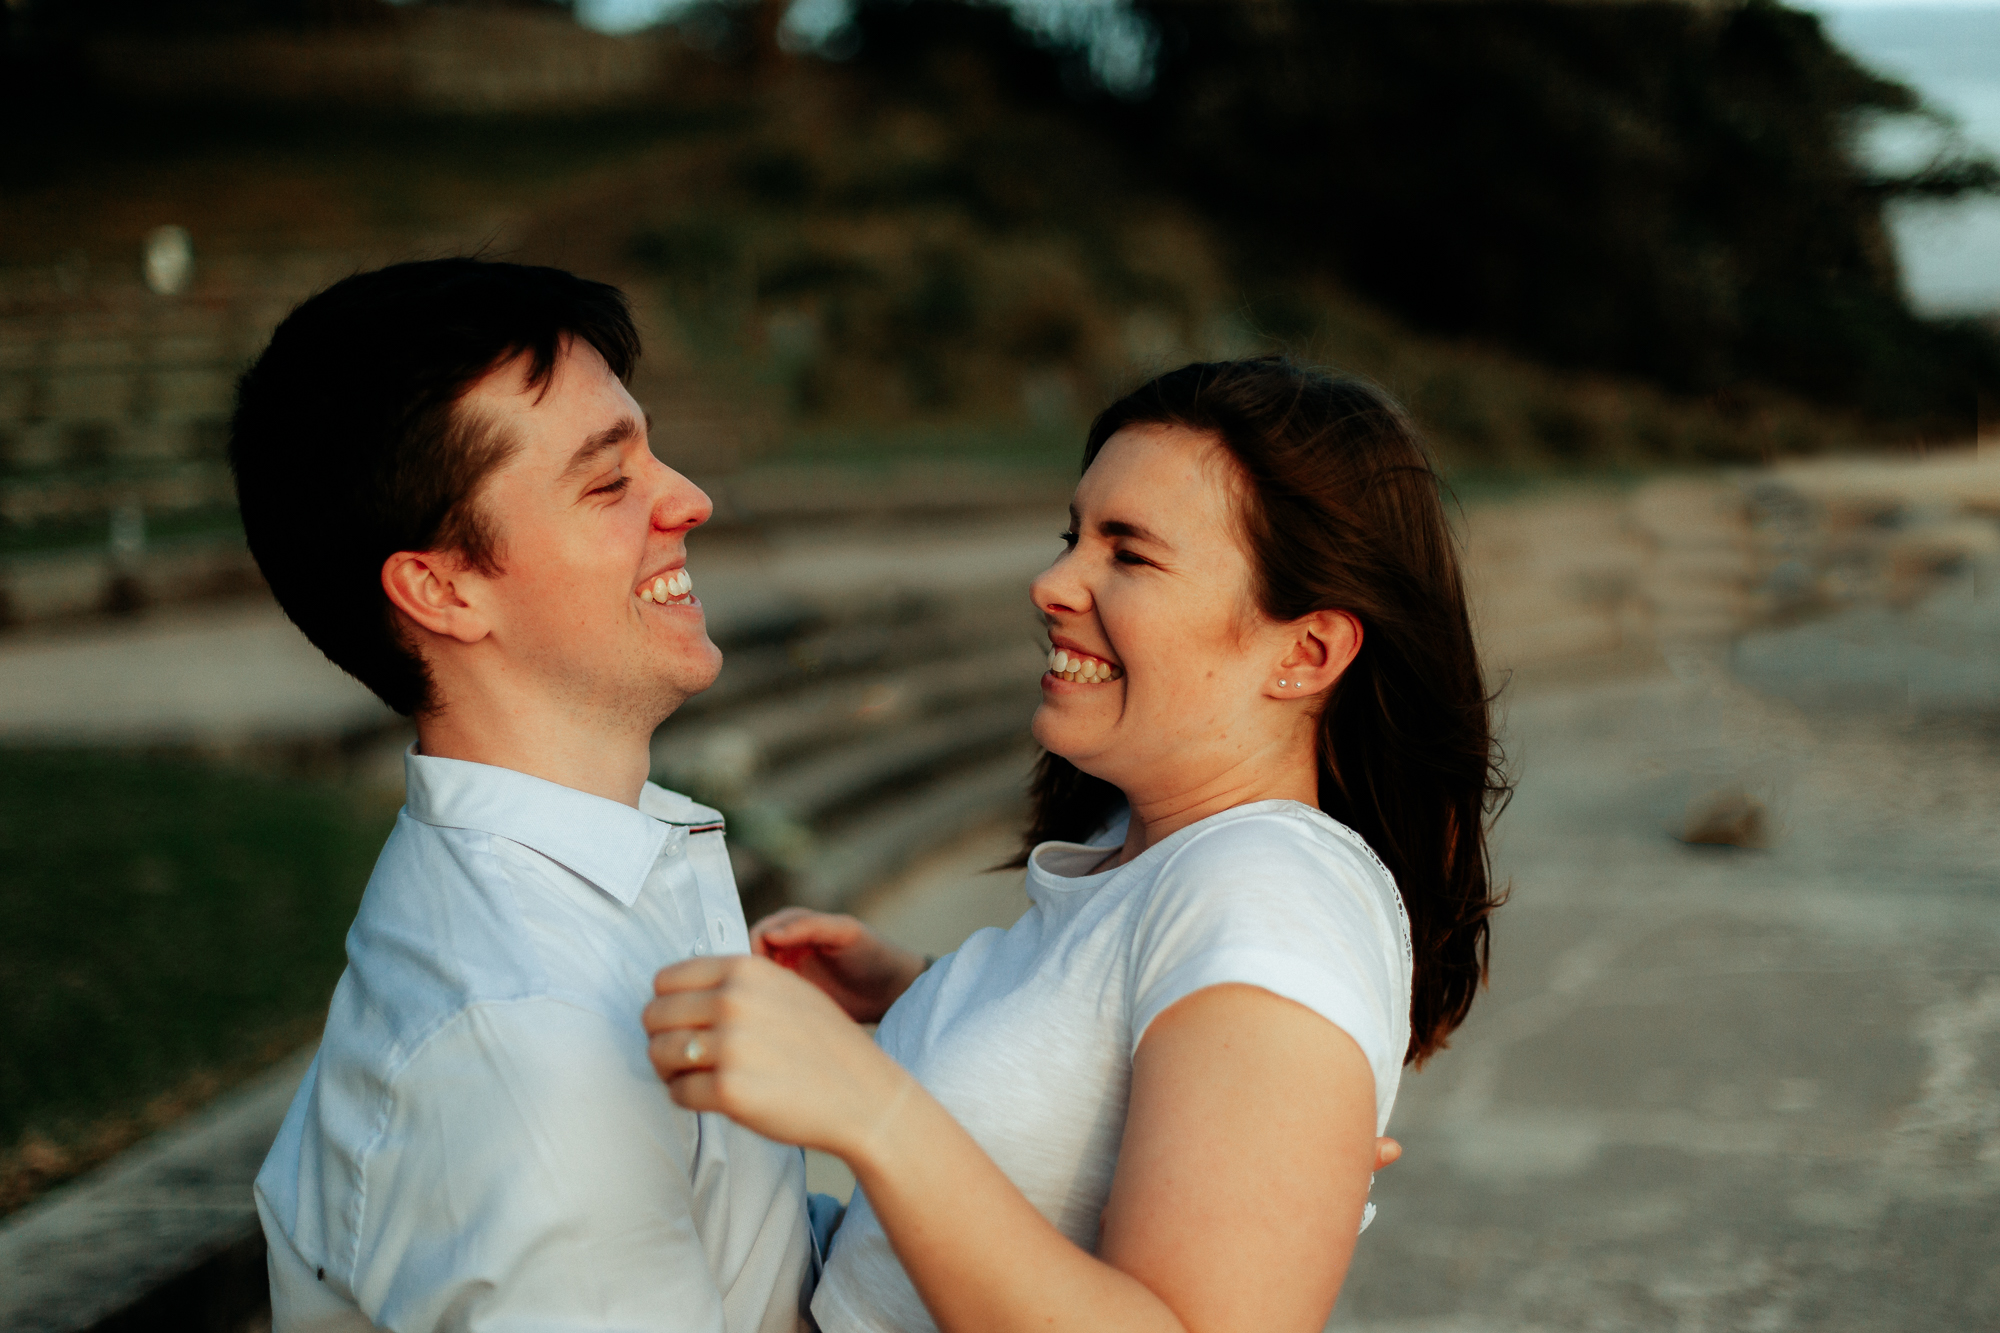 Amanzi and Steven_Engagement_Sydney_Holly Medway Photography-63.JPG